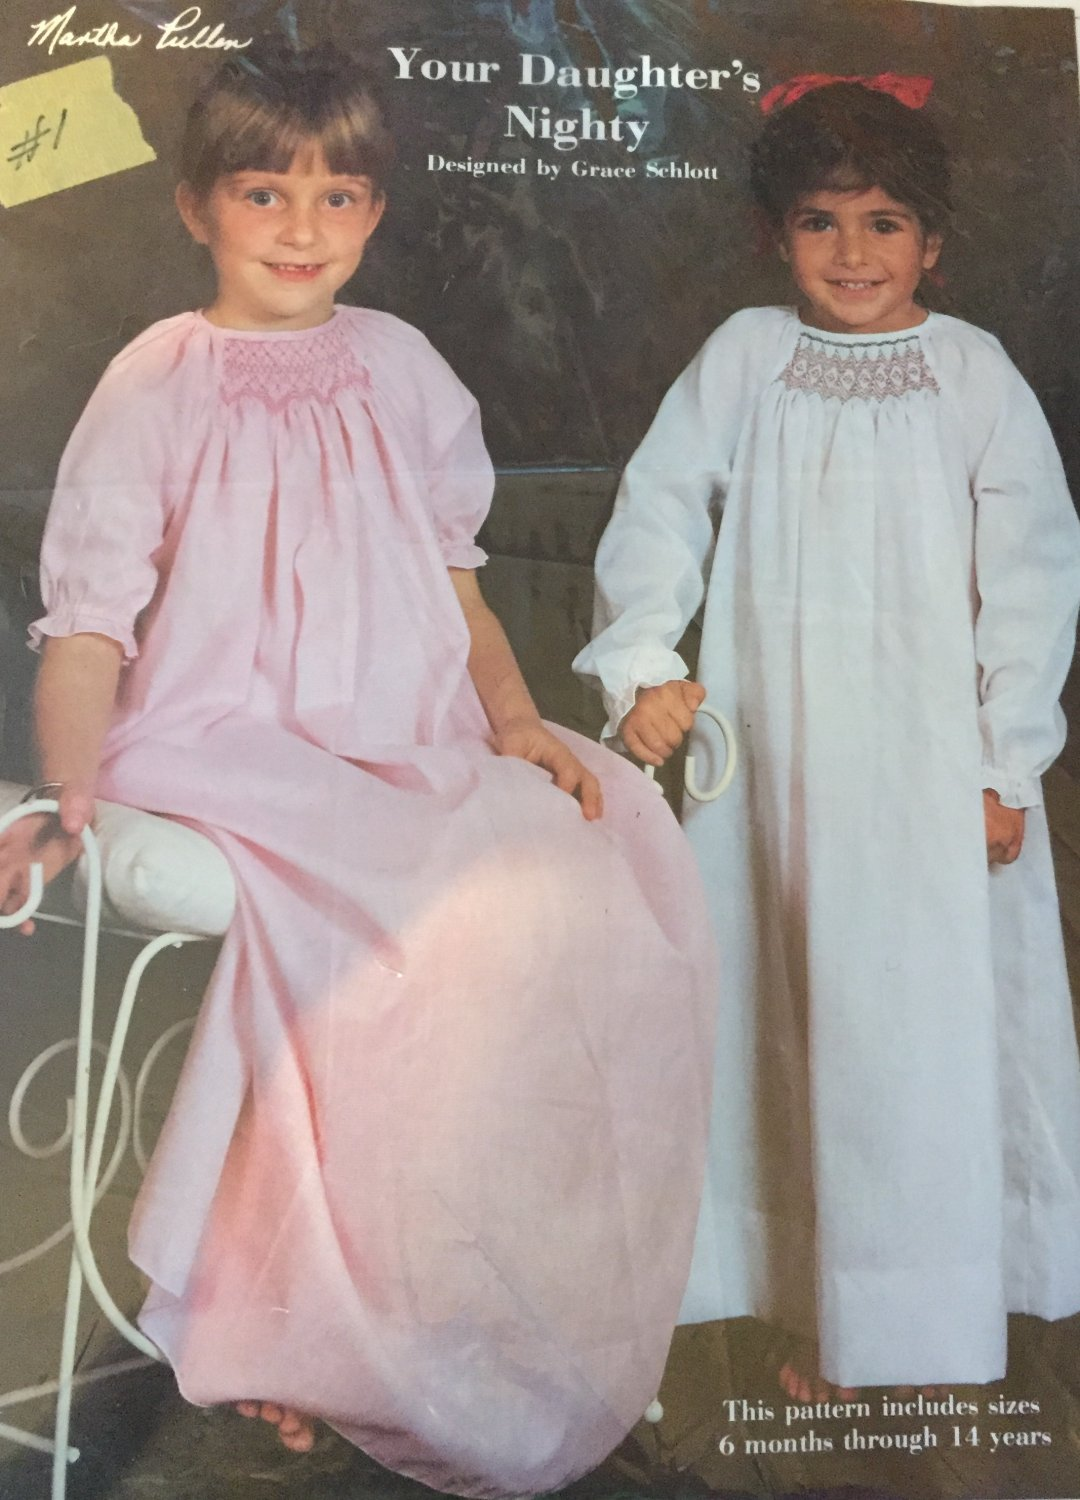 Martha Pullen Your Daughter's Nighty designed by Grace Schlott size 6 months to age 14